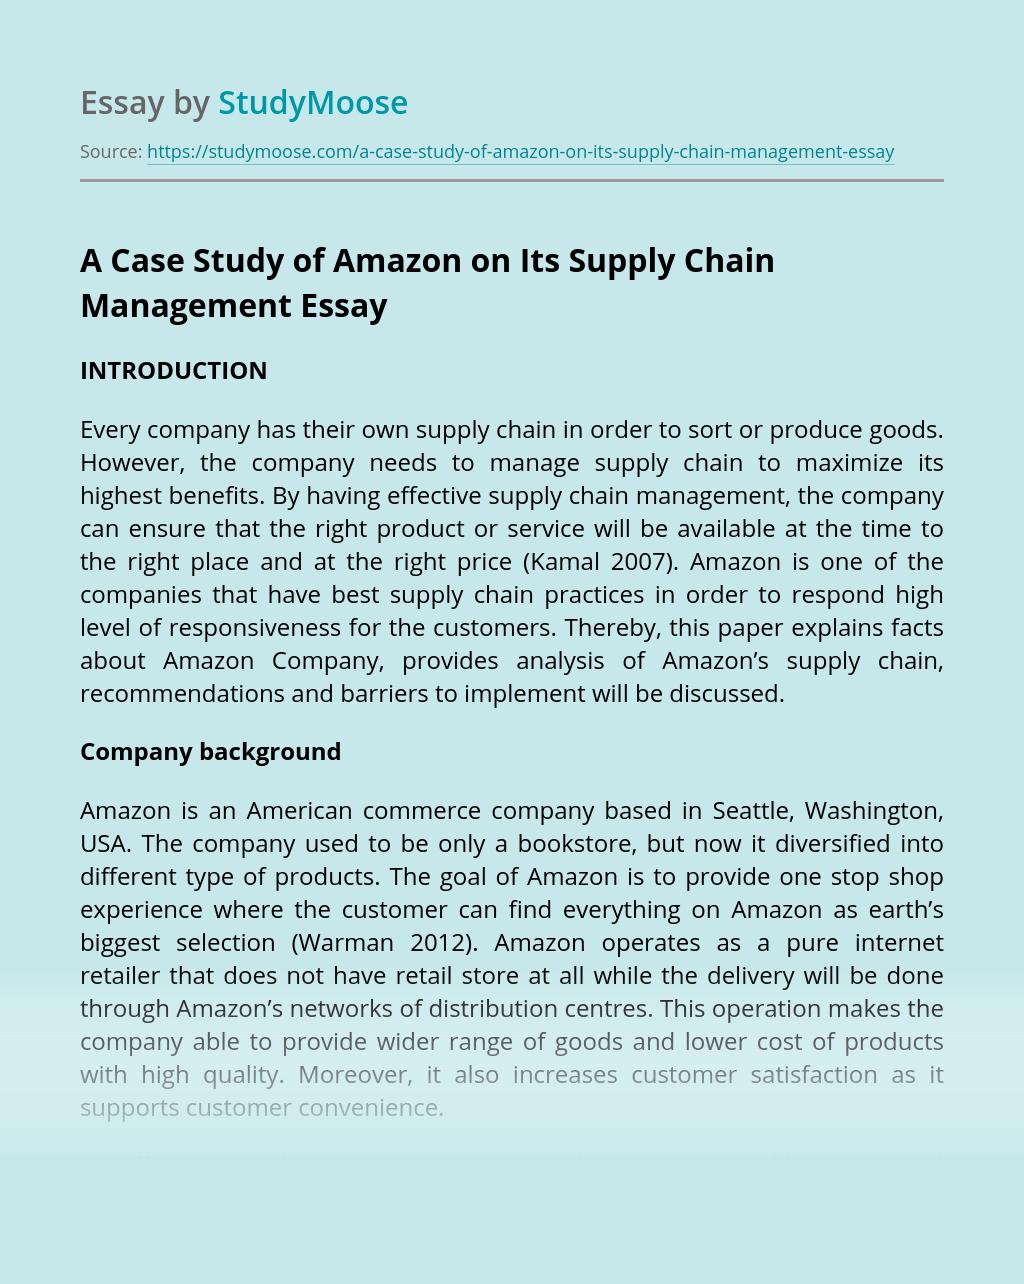 A Case Study of Amazon on Its Supply Chain Management